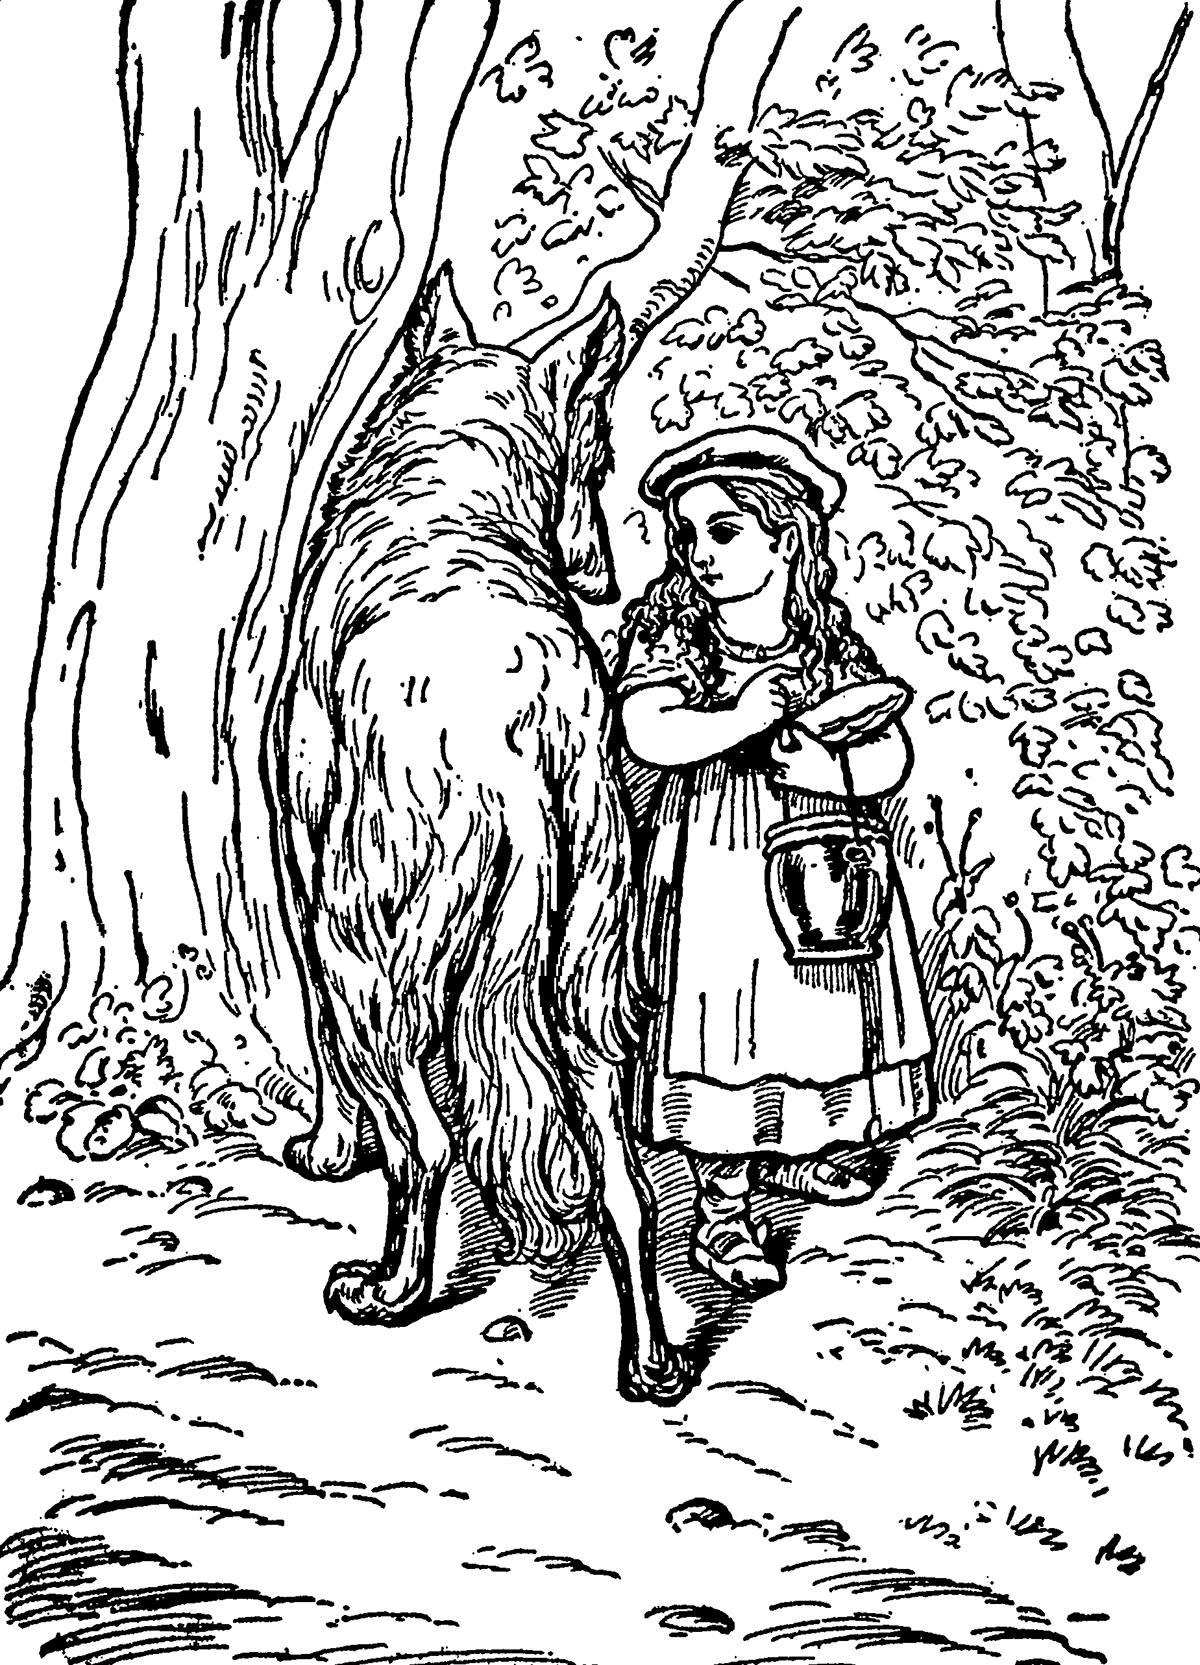 Little Red Riding Hood, The Tales of Mother Goose illustrated by D. J. Munro